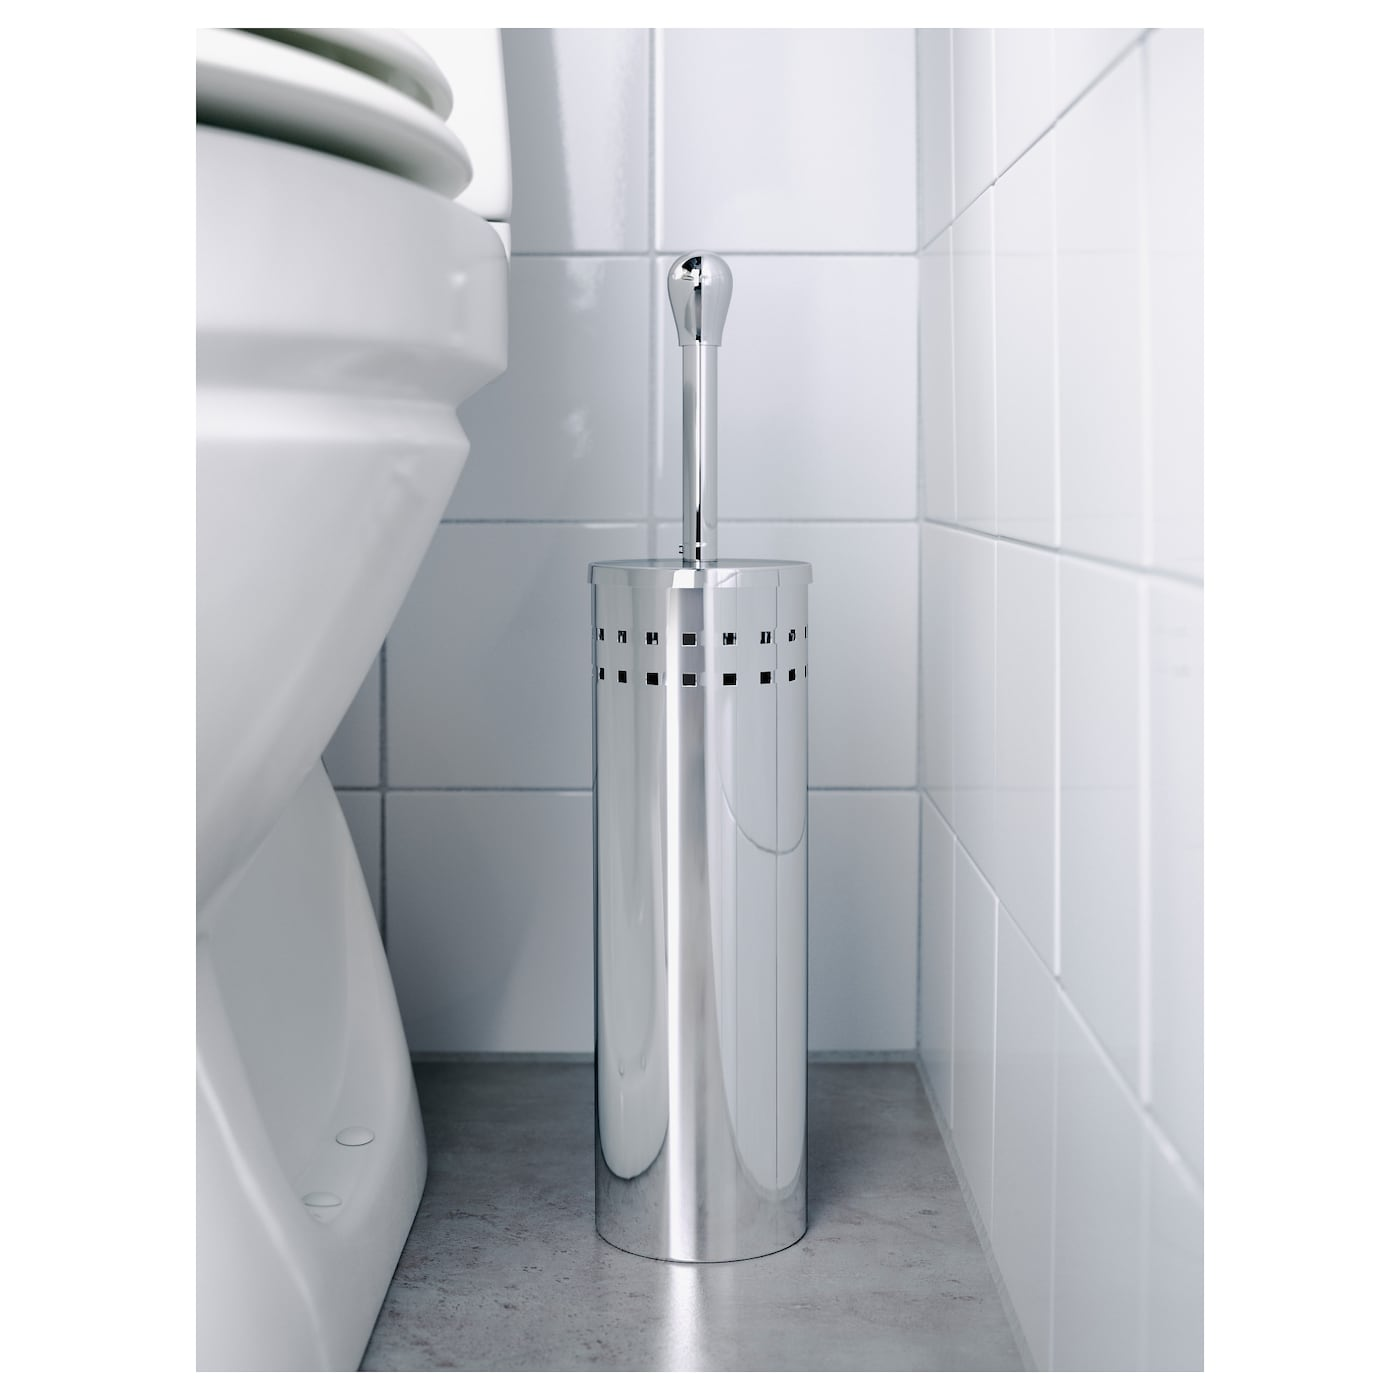 IKEA BAREN toilet brush